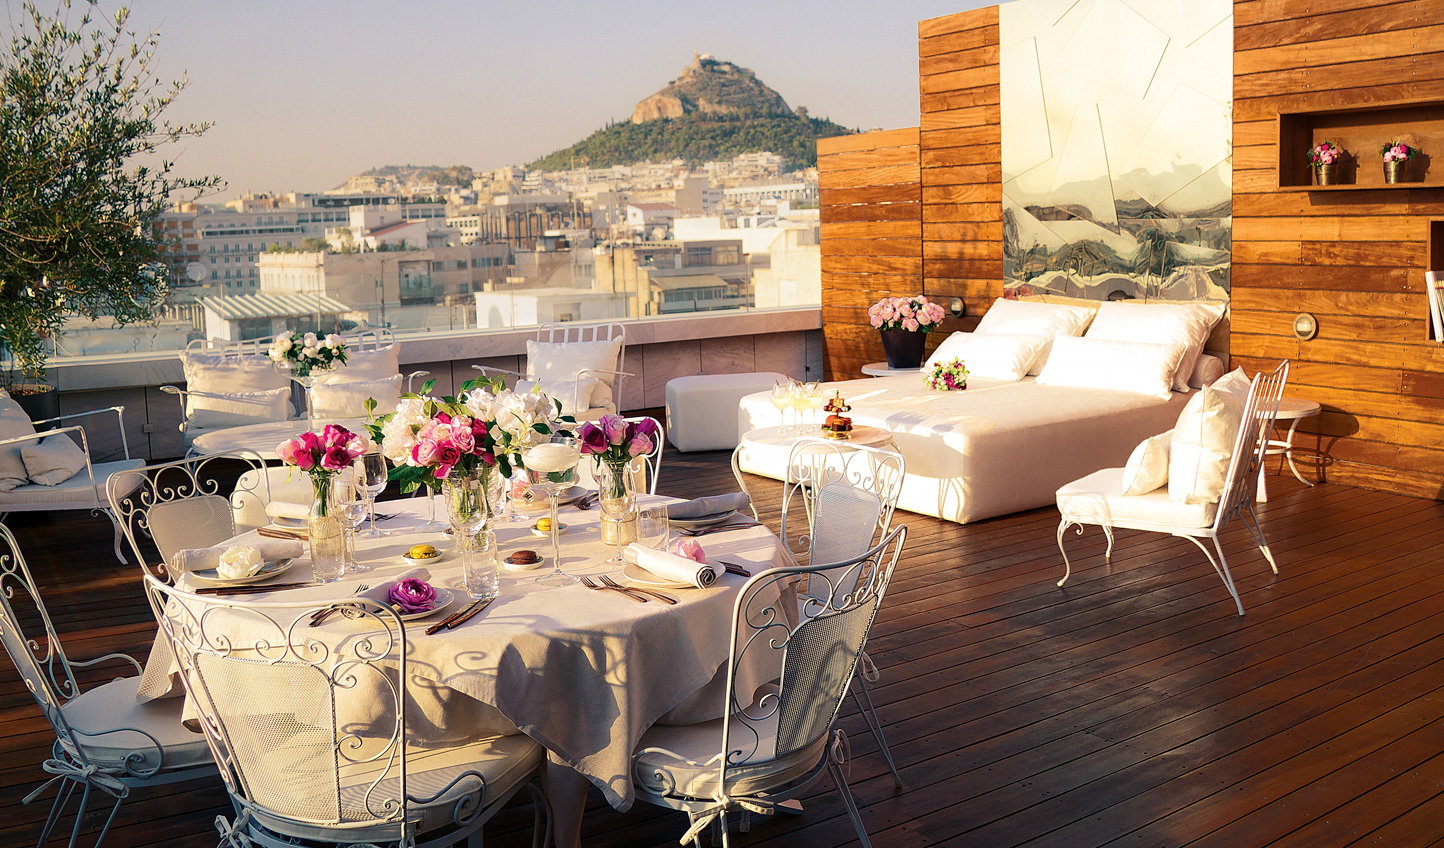 Dine in privacy on the penthouse terrace